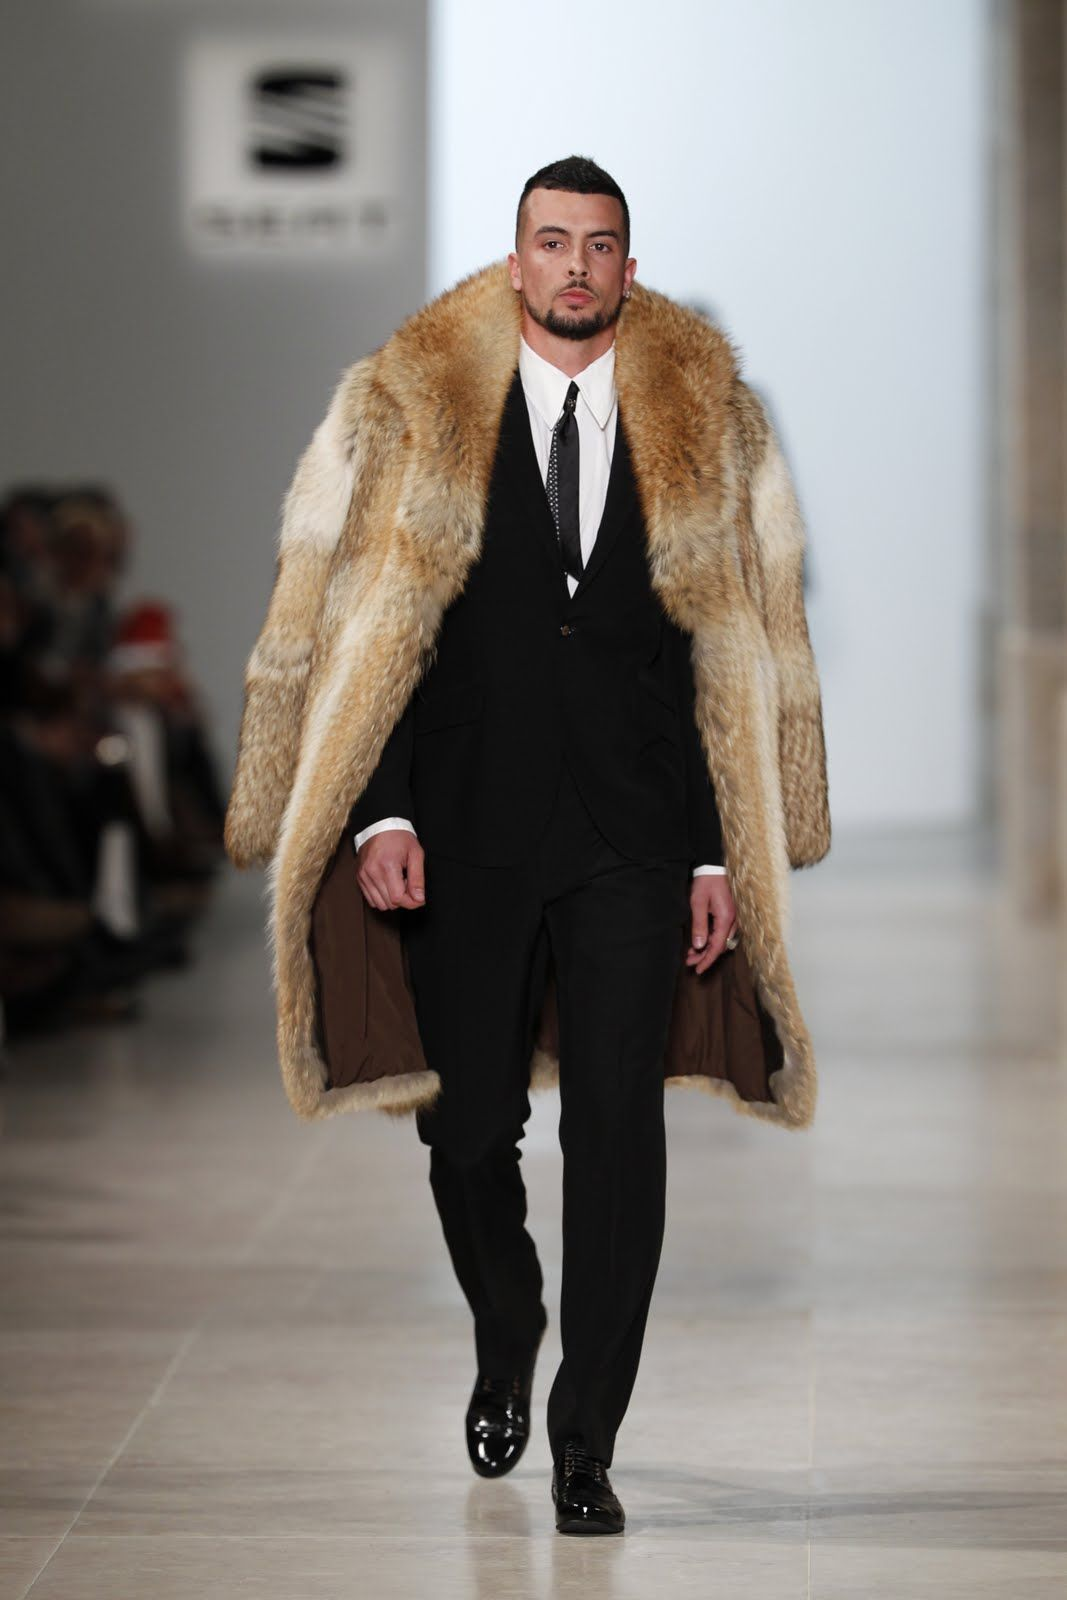 What do you think of men in fur? Conceito Homem ...